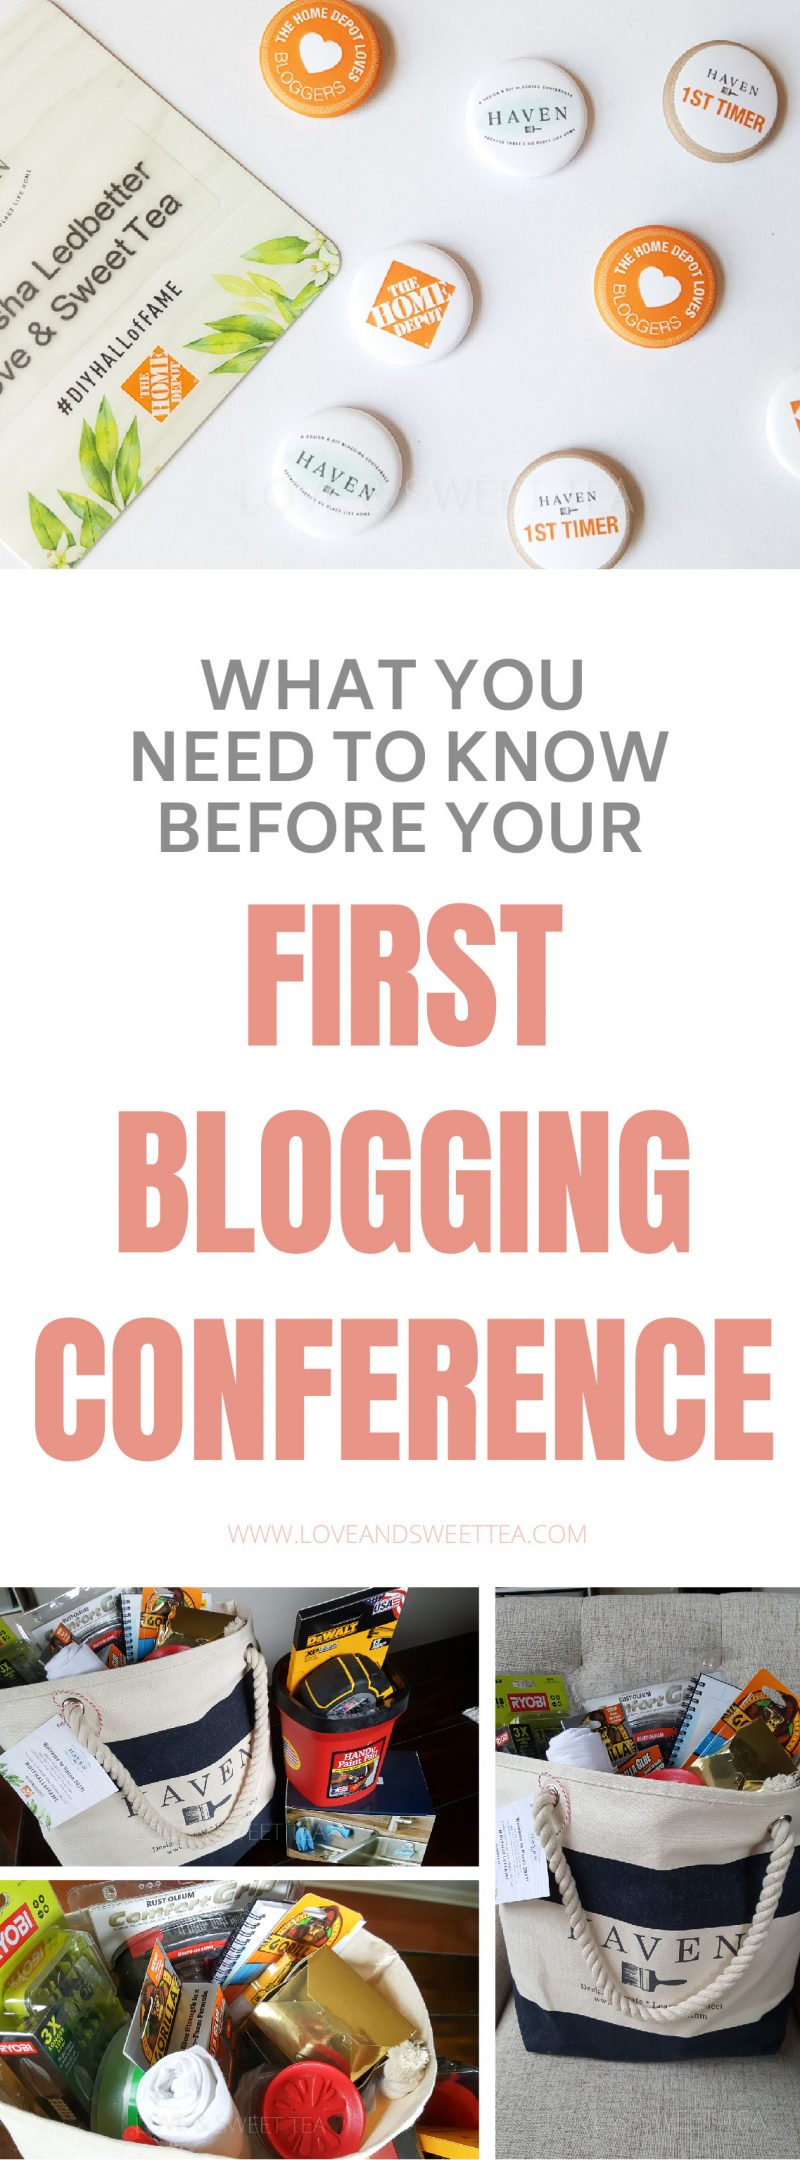 These are great blogging conference tips for your first blogging conference. Like what to wear and what to put on your business cards. Click through to read what you don't know you don't know!